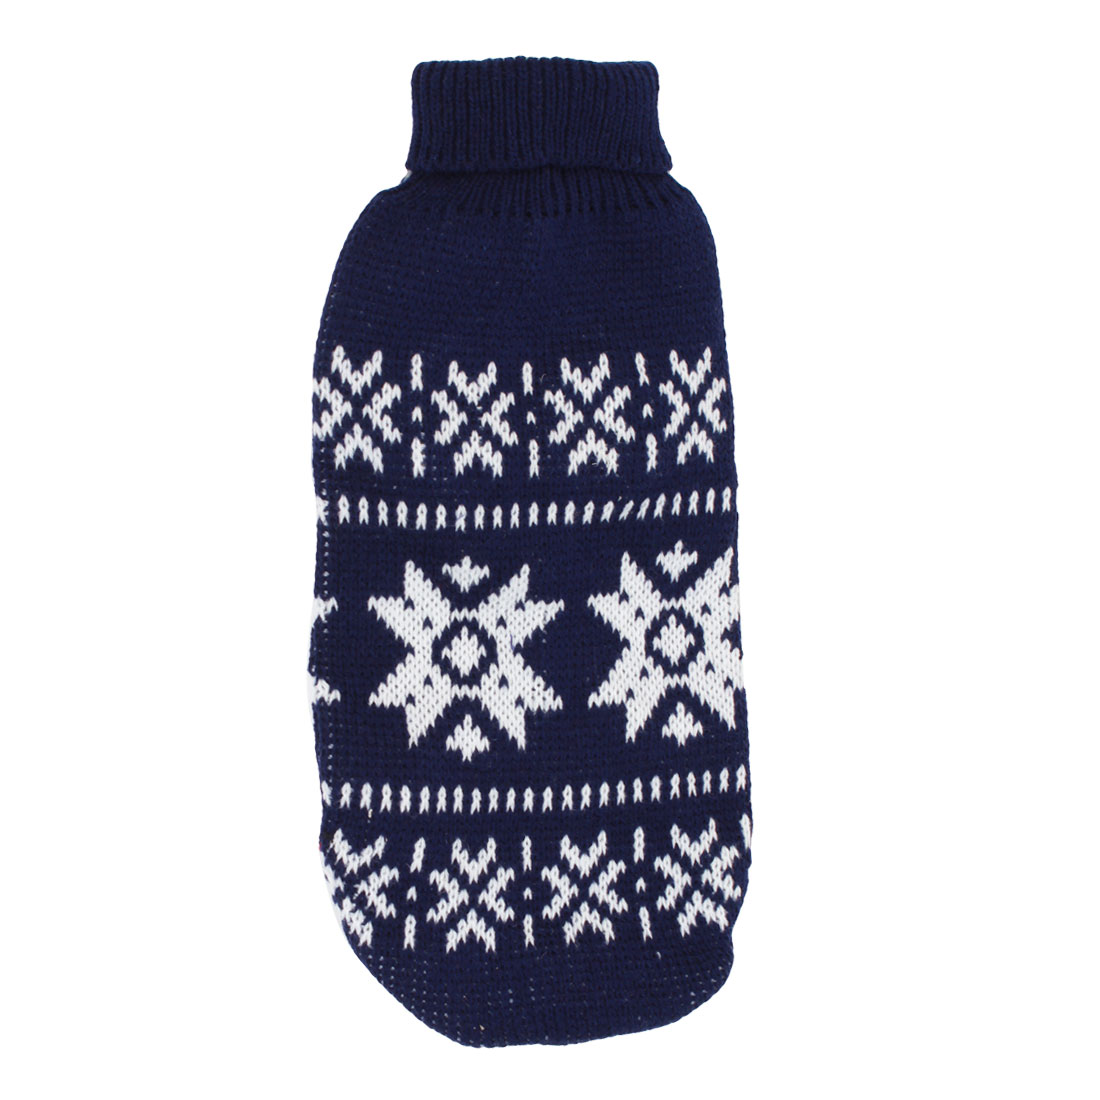 Pet Dog Puppy Ribbed Cuff Knitwear Turtleneck Apparel Sweater Dark Blue White Size XXS